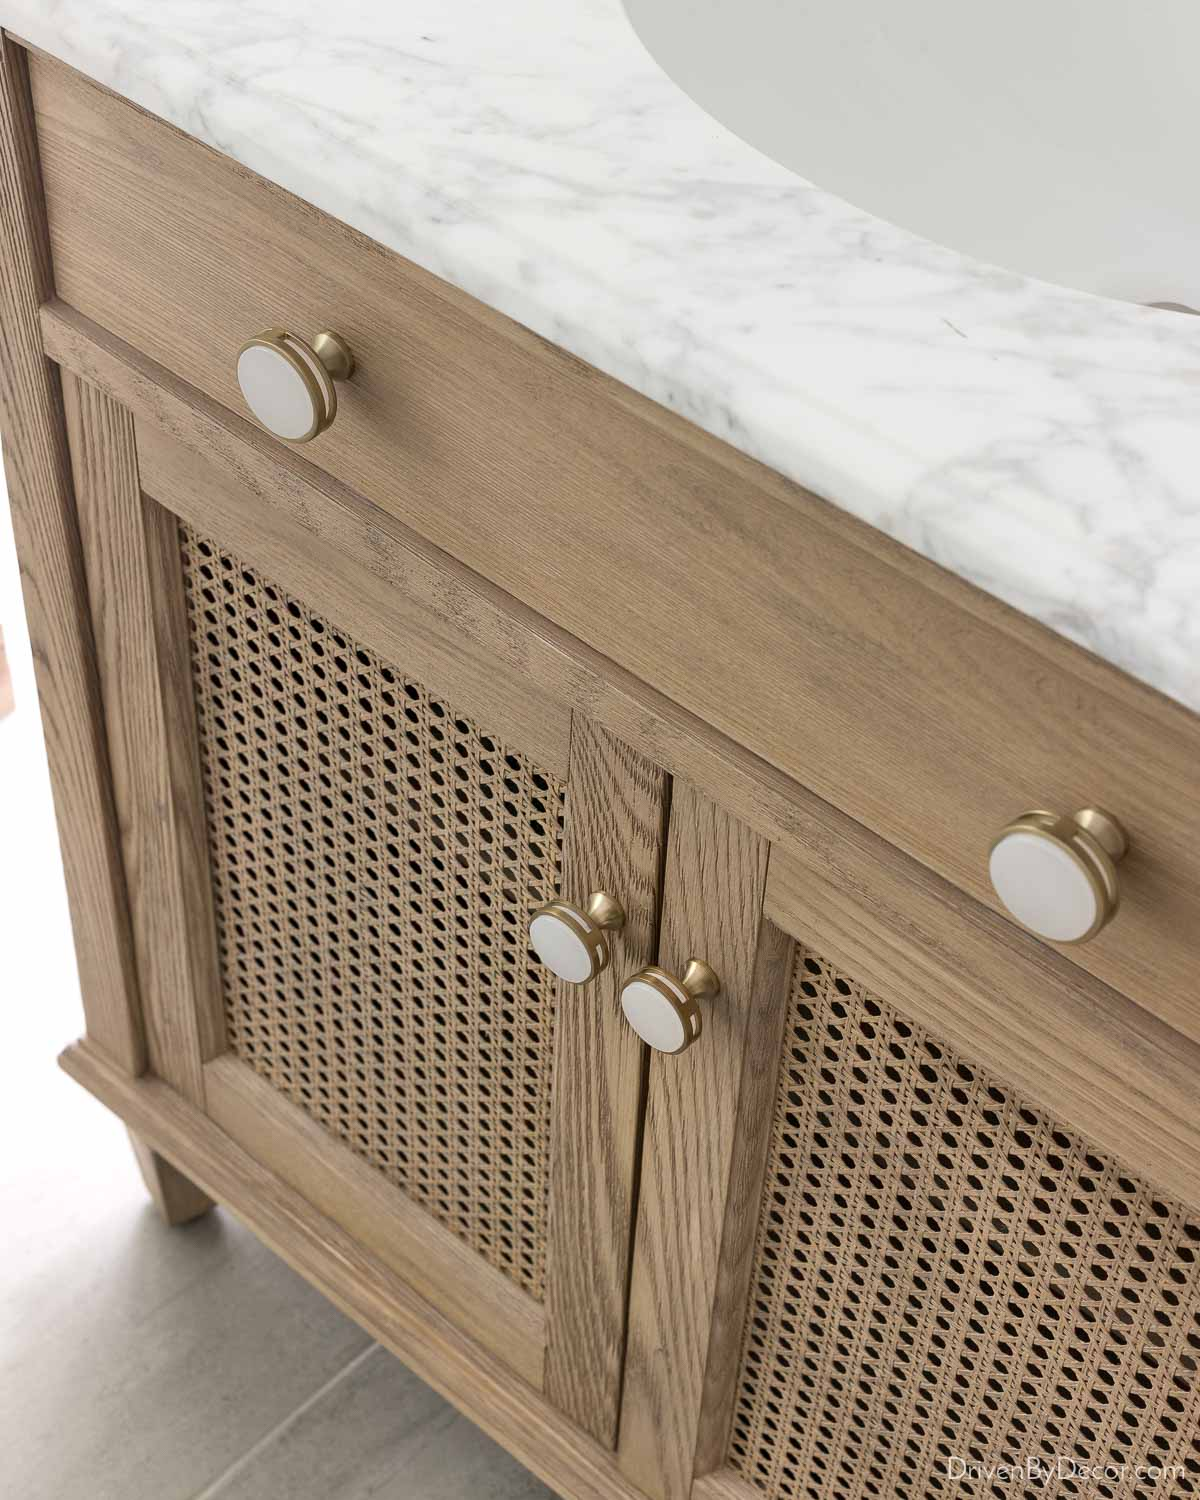 Love these acrylic and gold knobs for bathroom cabinets!